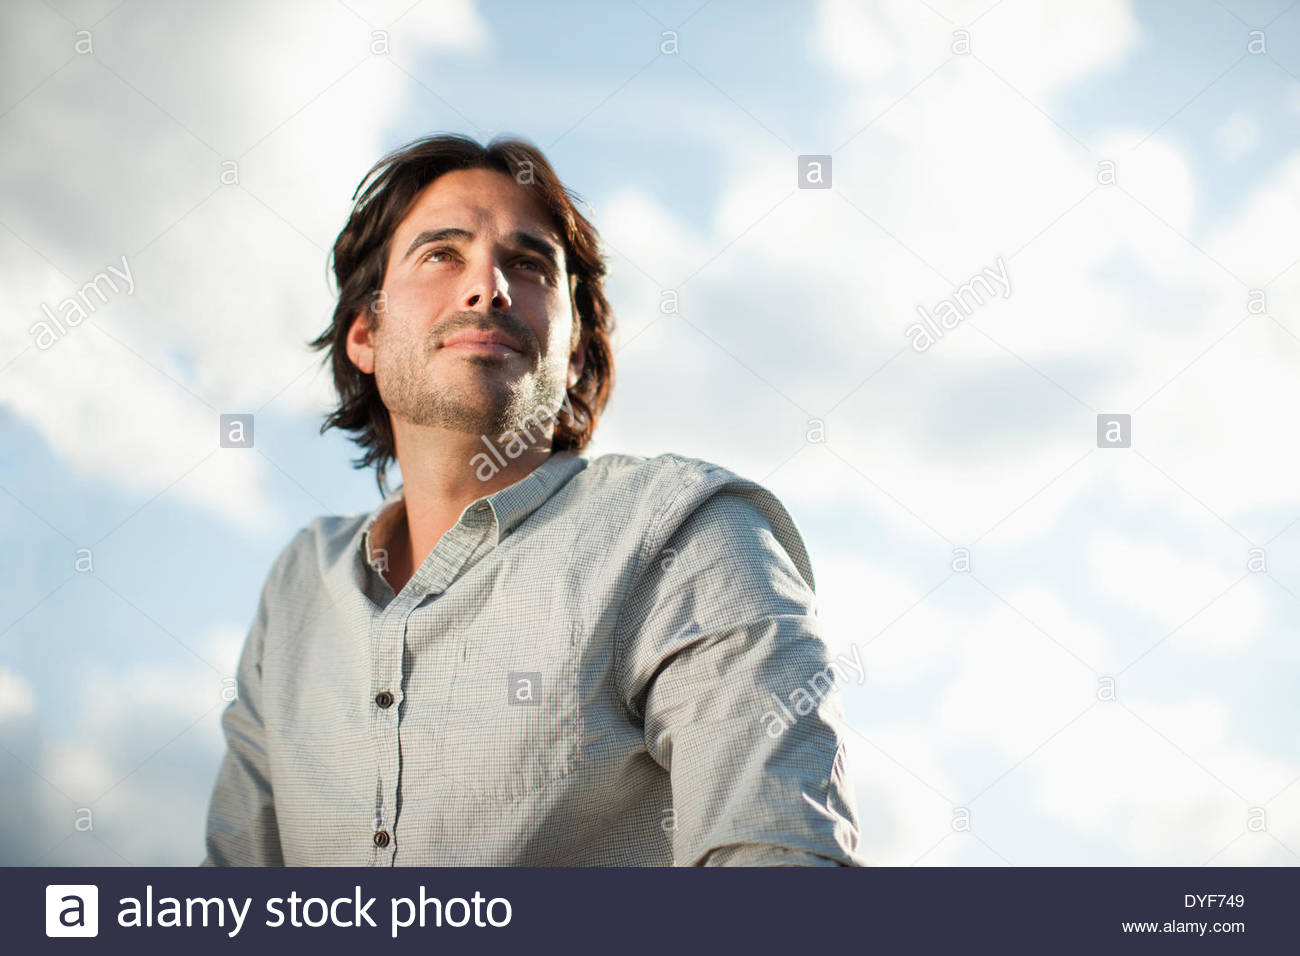 Pensive businessman looking in front outdoors - Stock Image